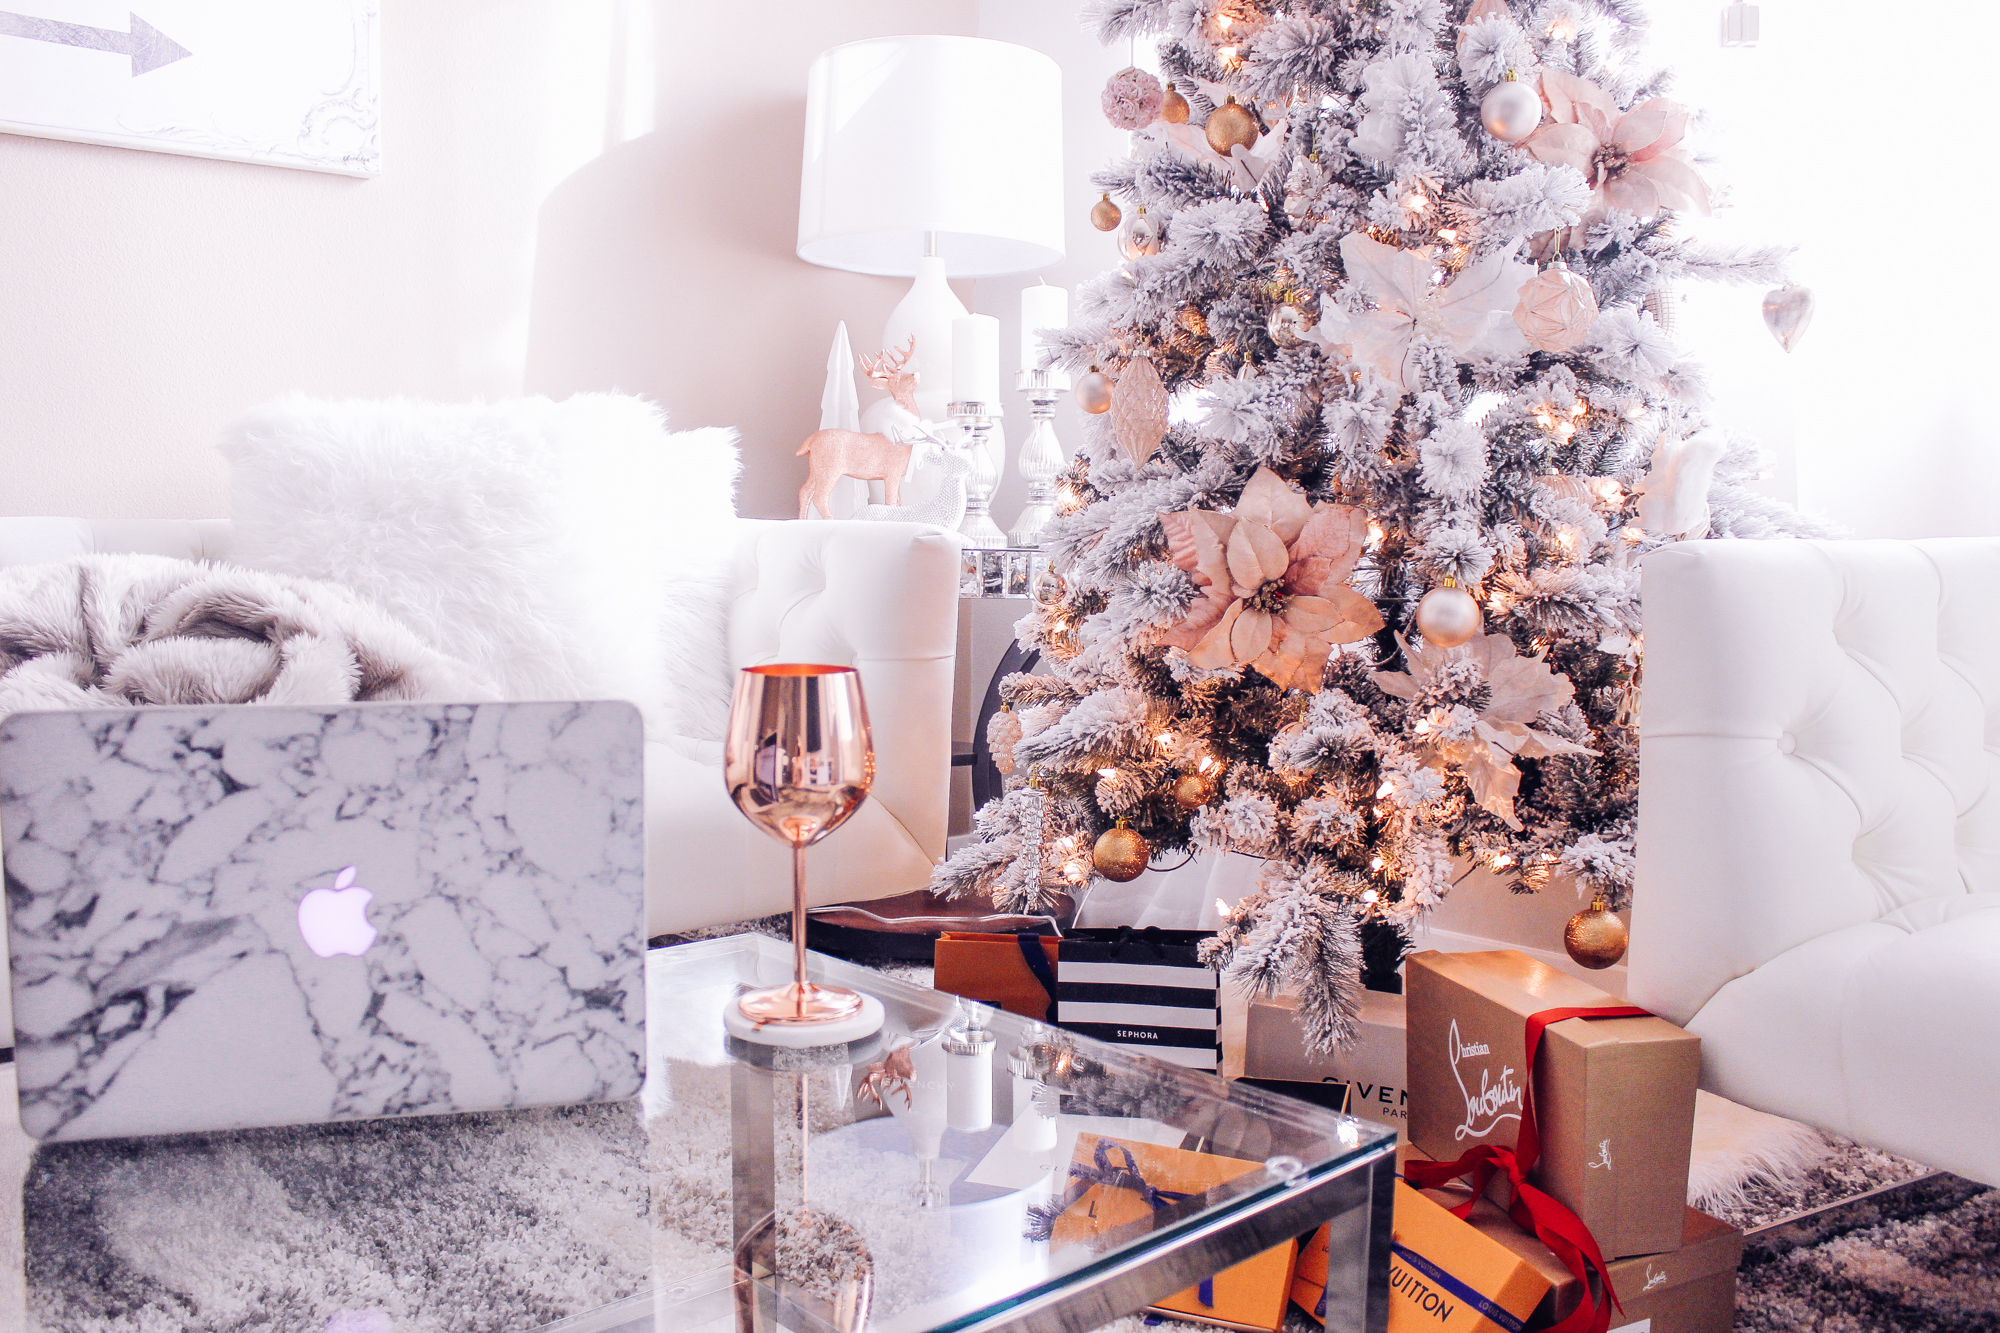 Holiday Gift Guide - Gift Ideas under $25, $50, $100, & $200 | Blondie in the City